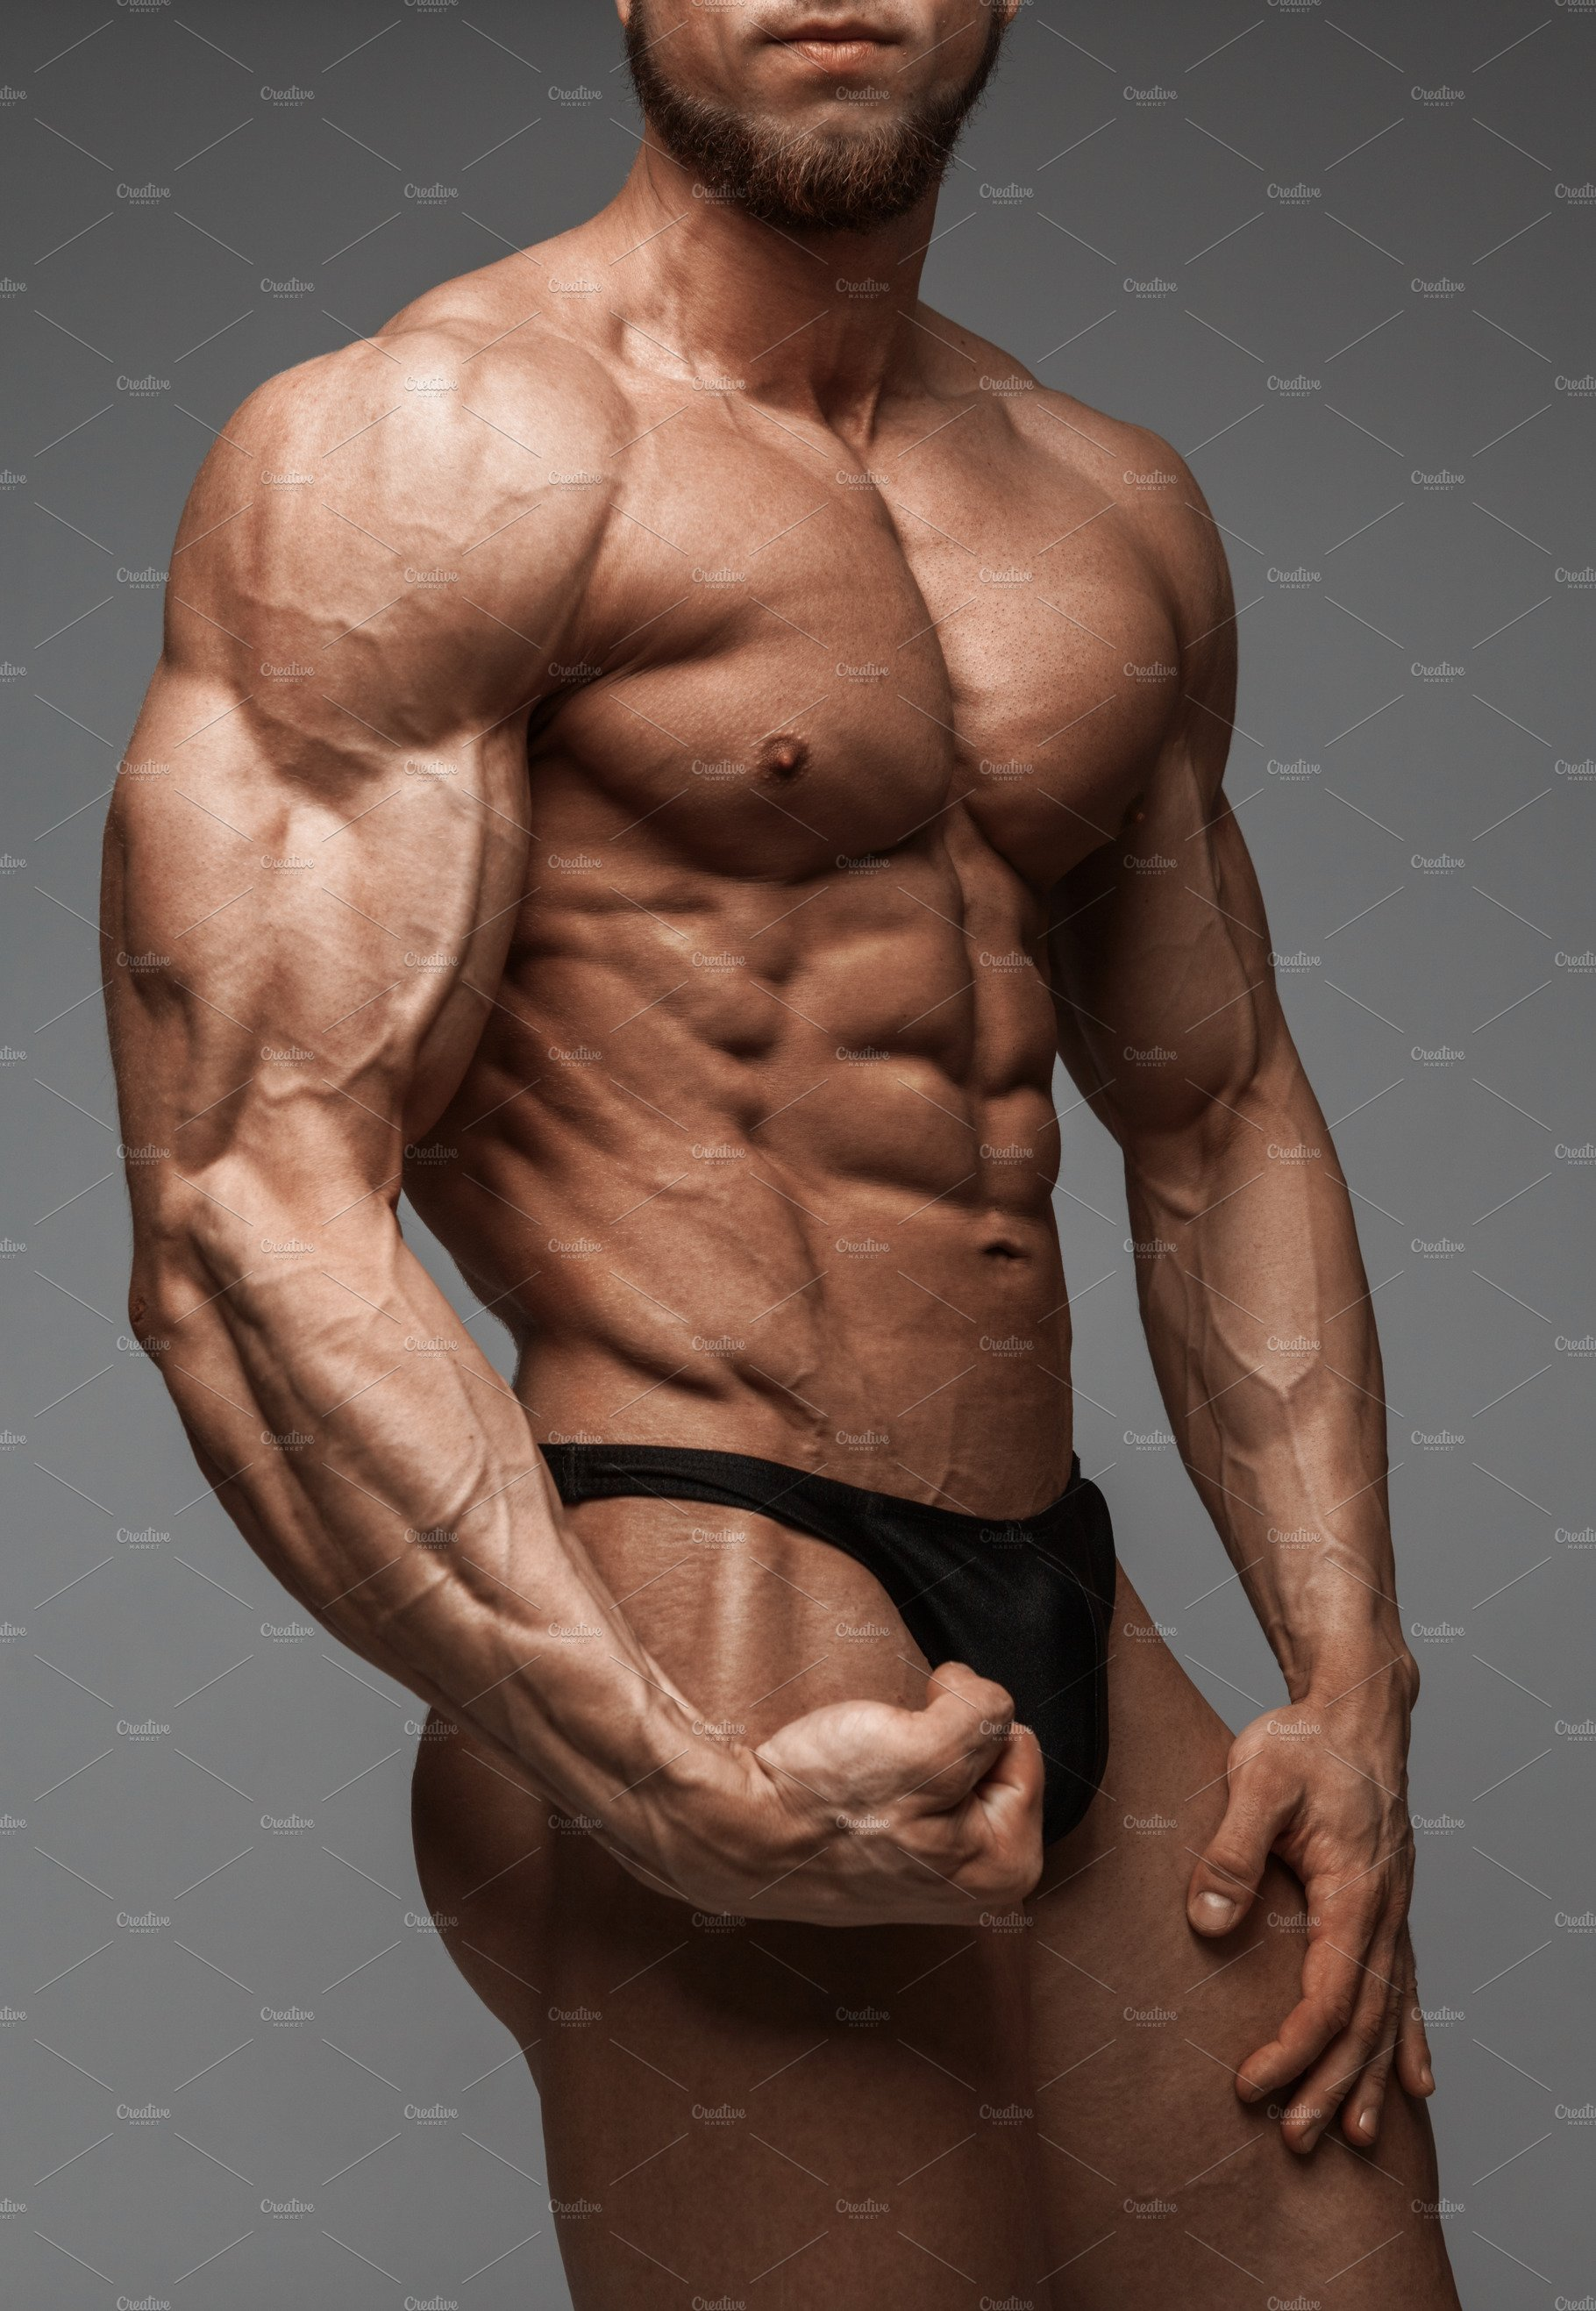 Bodybuilder man with perfect abs | High-Quality Sports